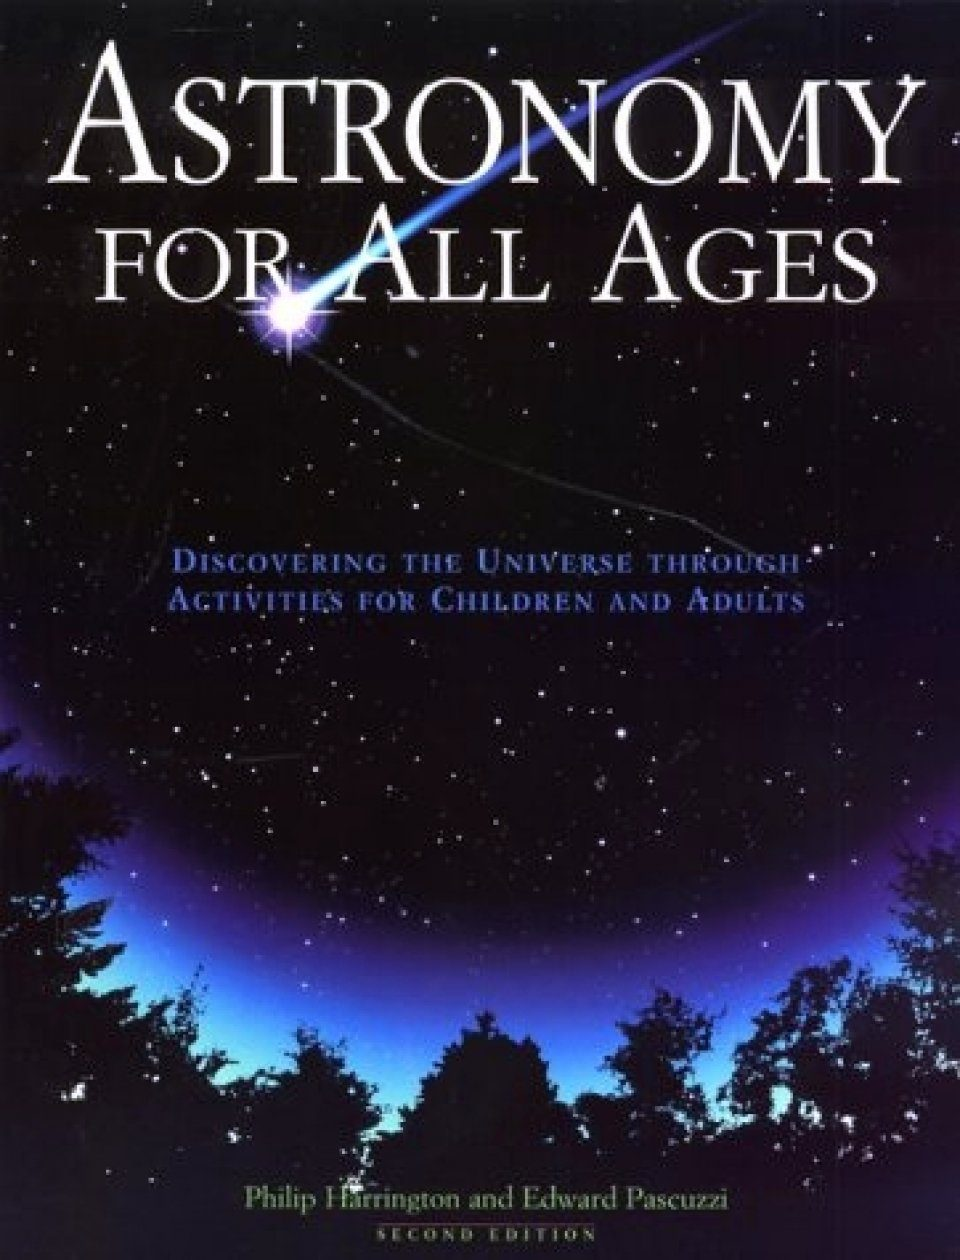 Astronomy for All Ages: Discovering the Universe Through Activities for Children